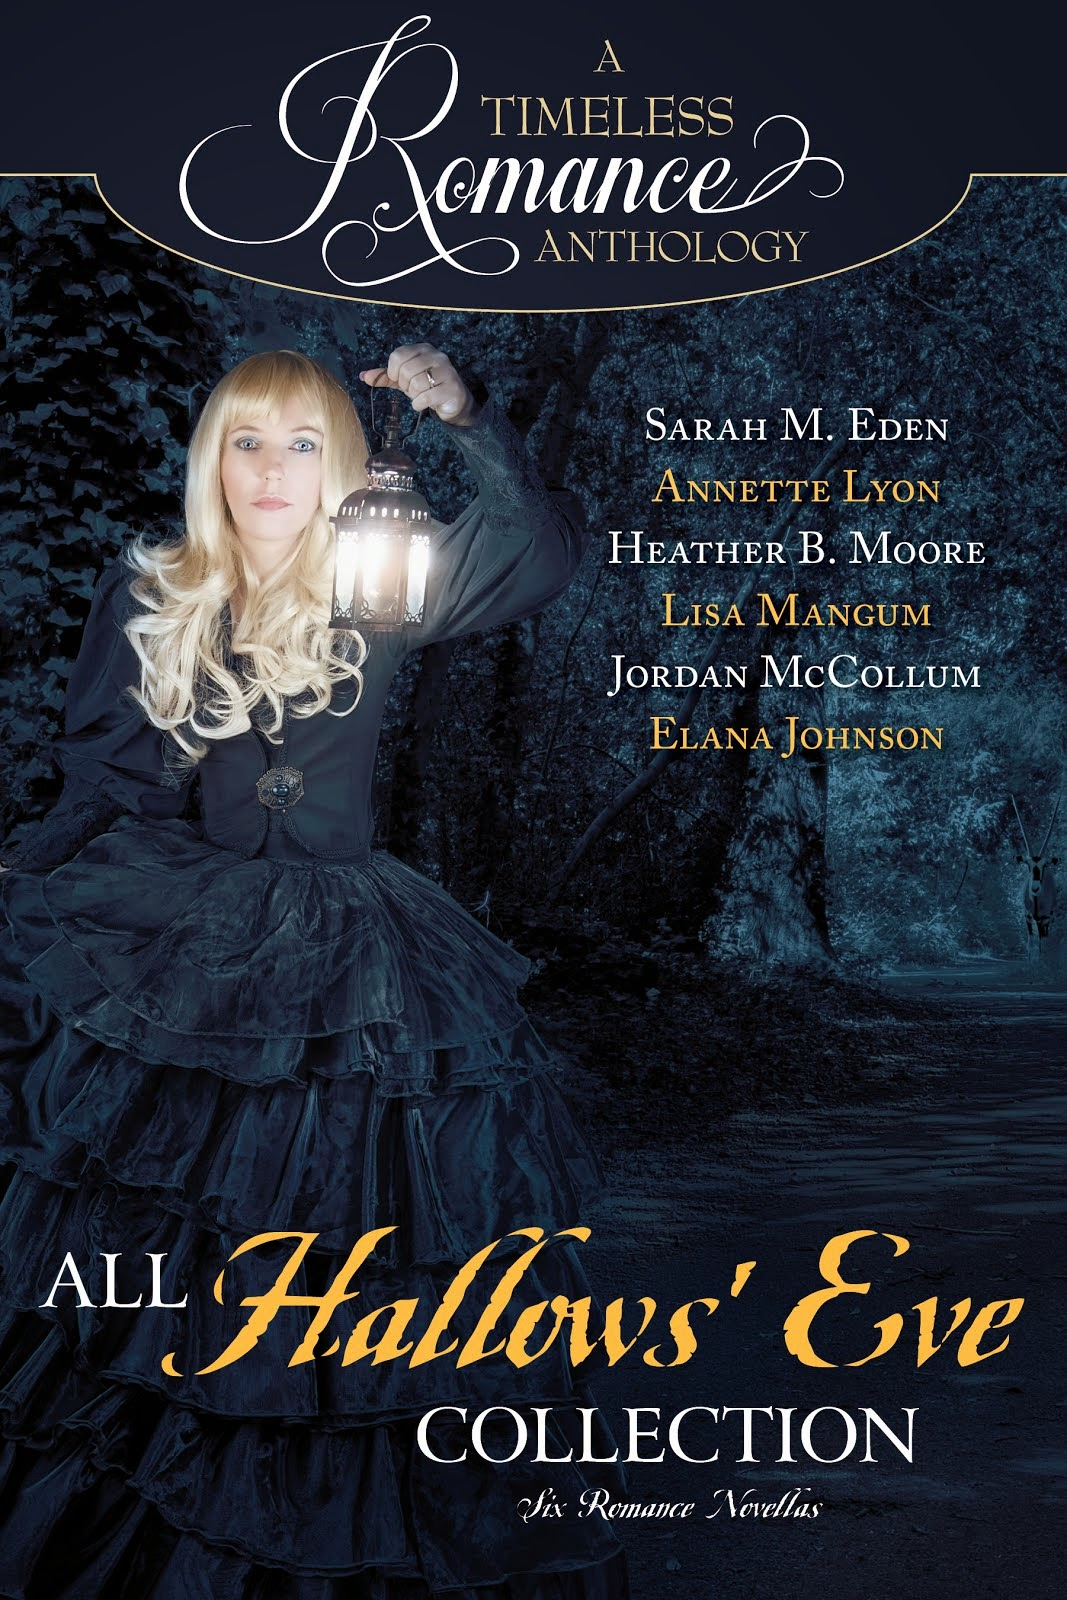 Coming August 2015: All Hallows' Eve Collection